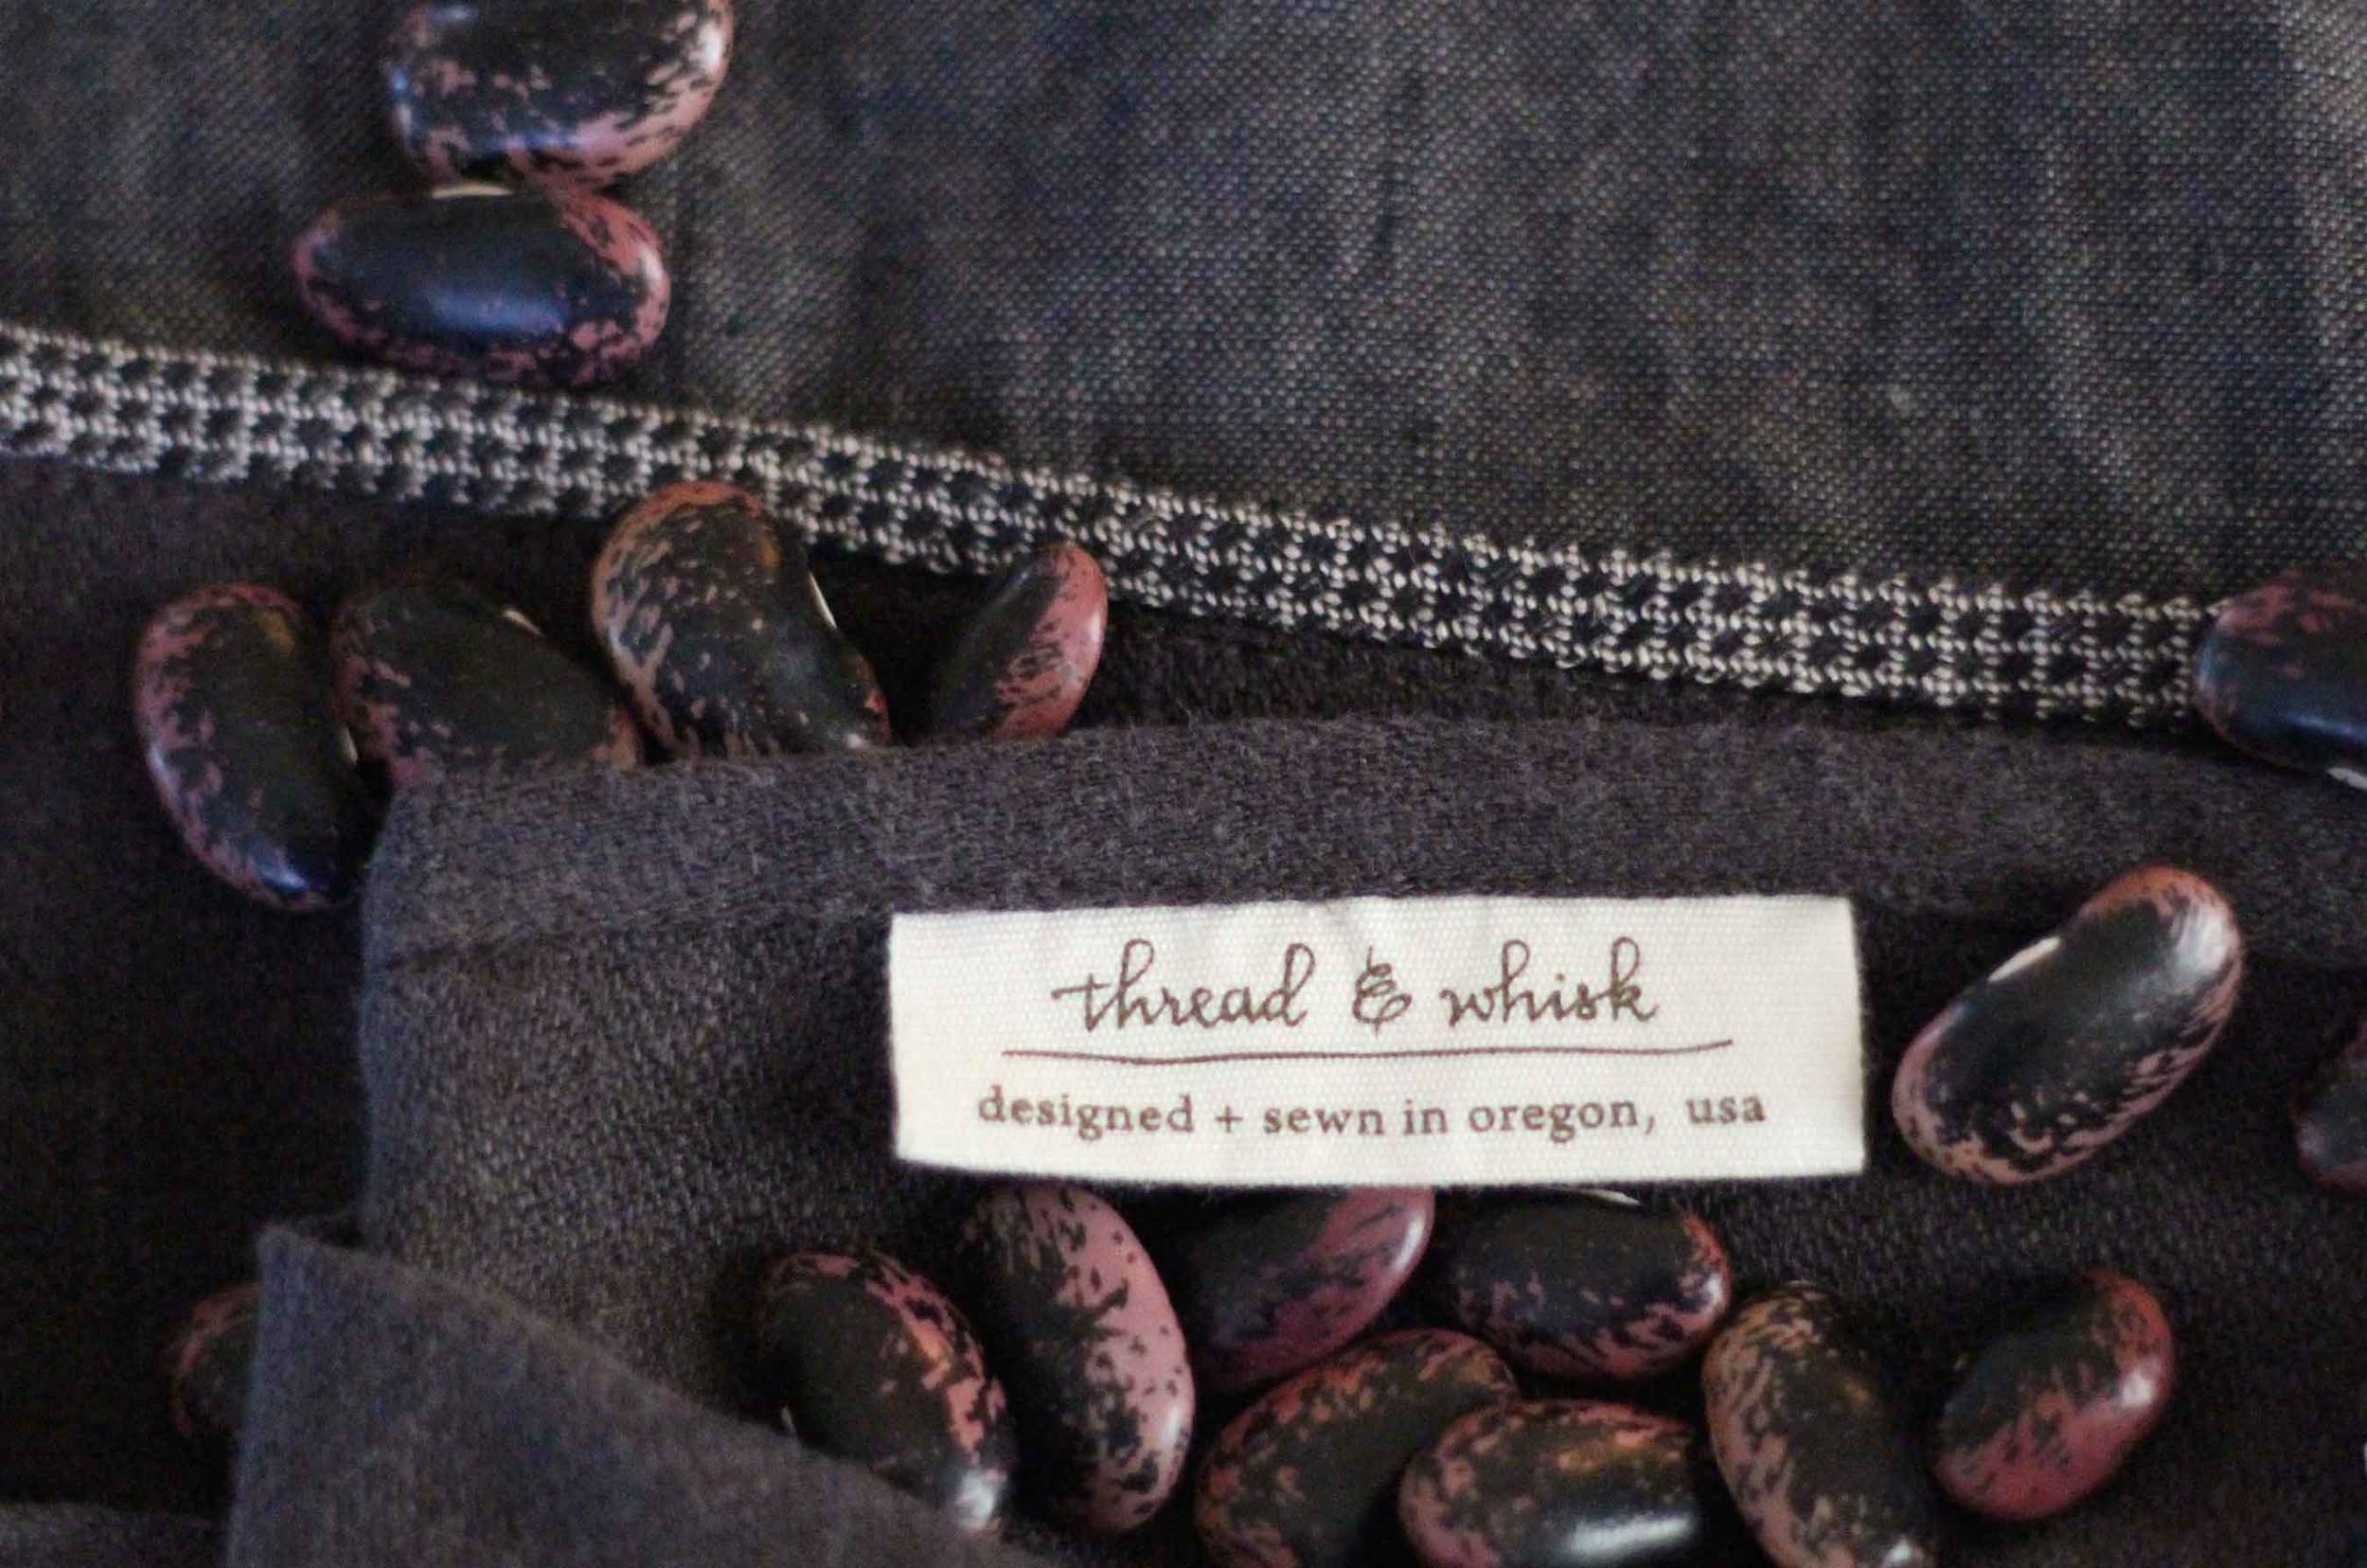 heirloom scarlet runner beans, Thread & Whisk label, brown linen, Monday red beans and rice recipe by Thread & Whisk